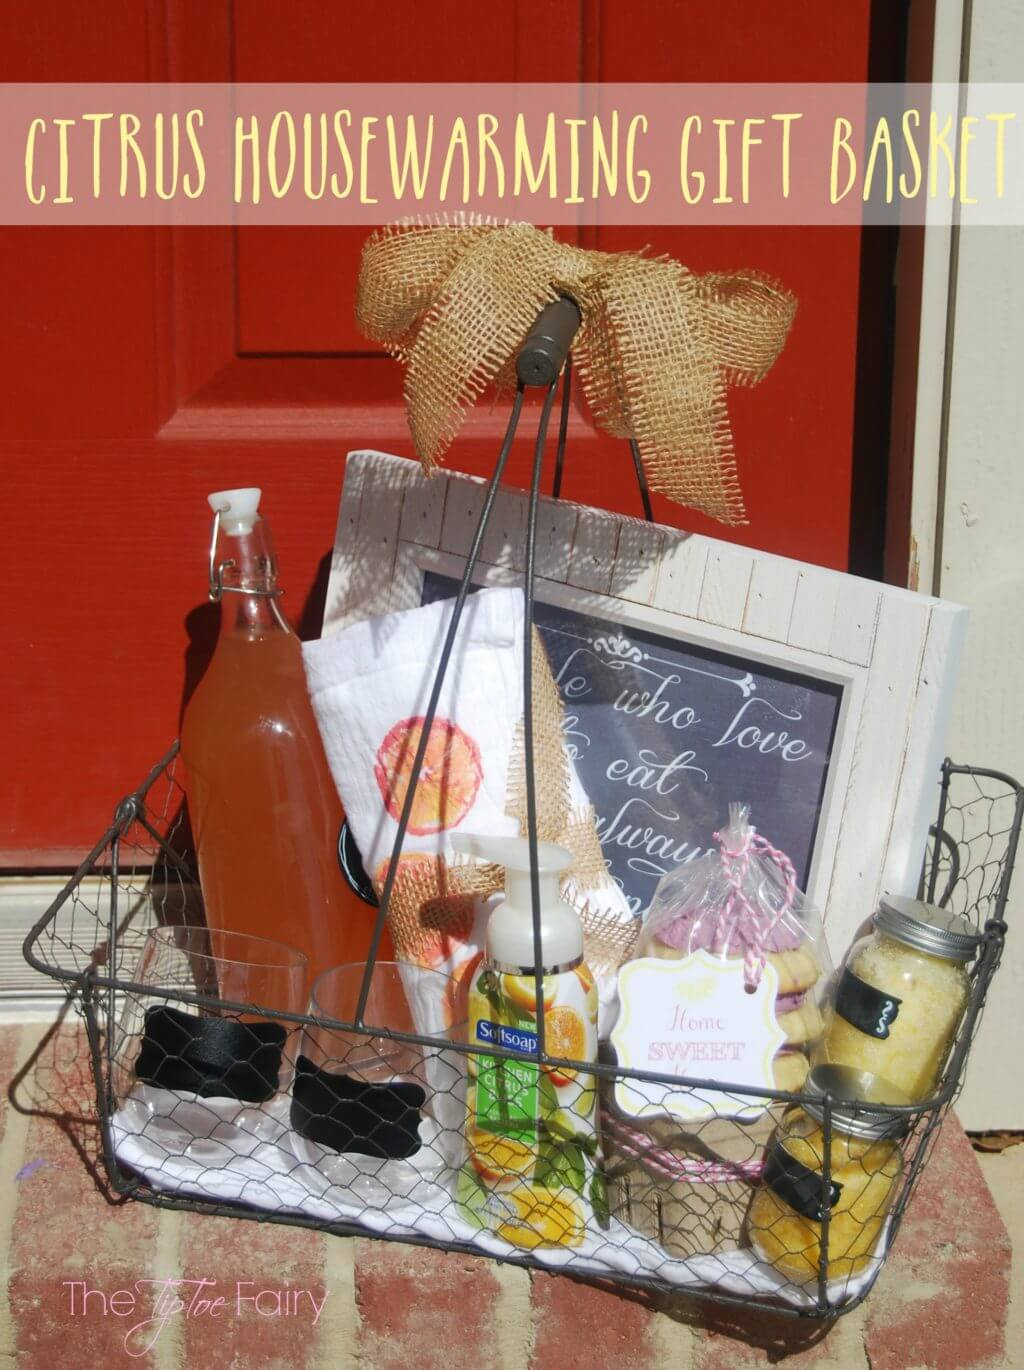 Make a Citrus Themed Housewarming Gift Basket with sweets, treats, and lemon stamped towels!   The TipToe Fairy #FoamSensations #ad